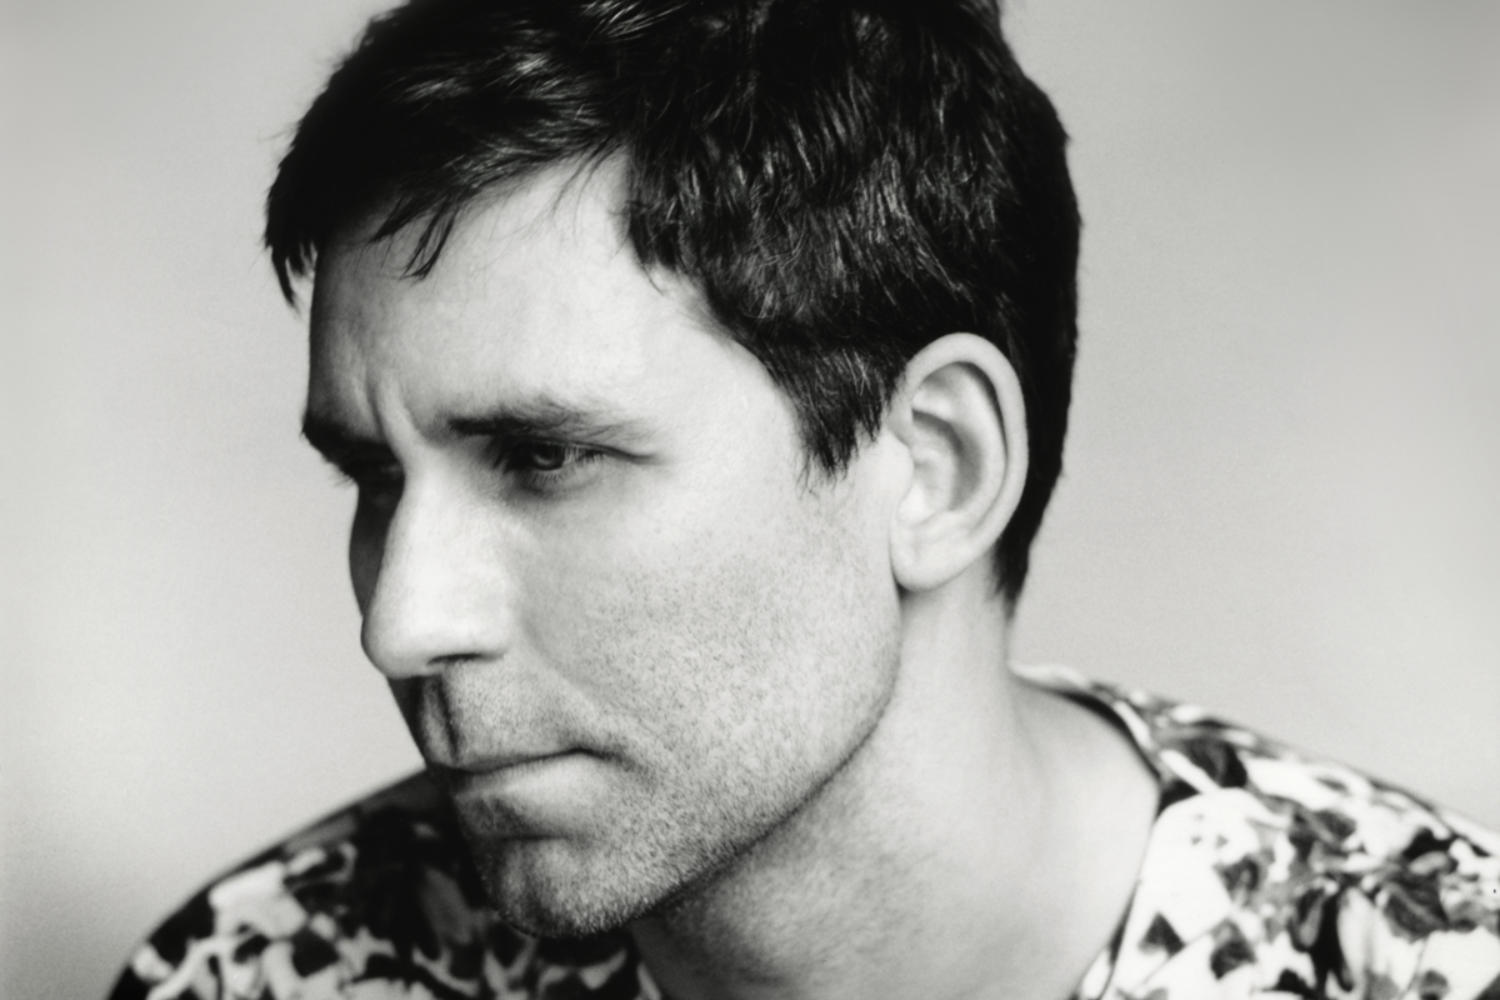 Jamie Lidell releases new track, 'Believe In Me'